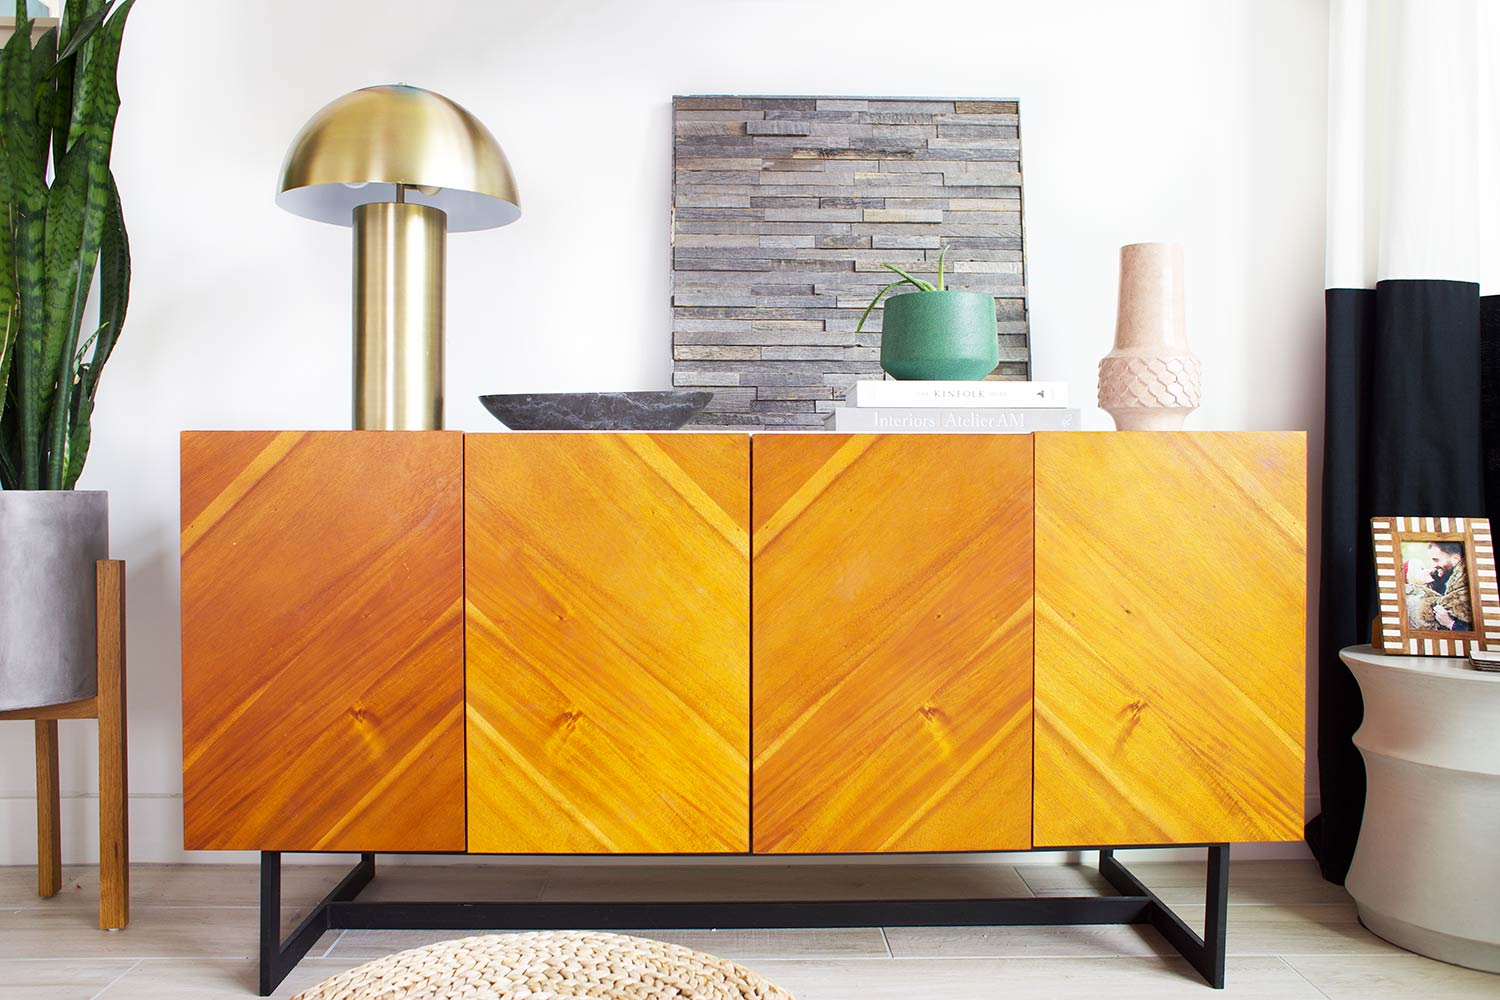 credenza featuring Stikwood wall art